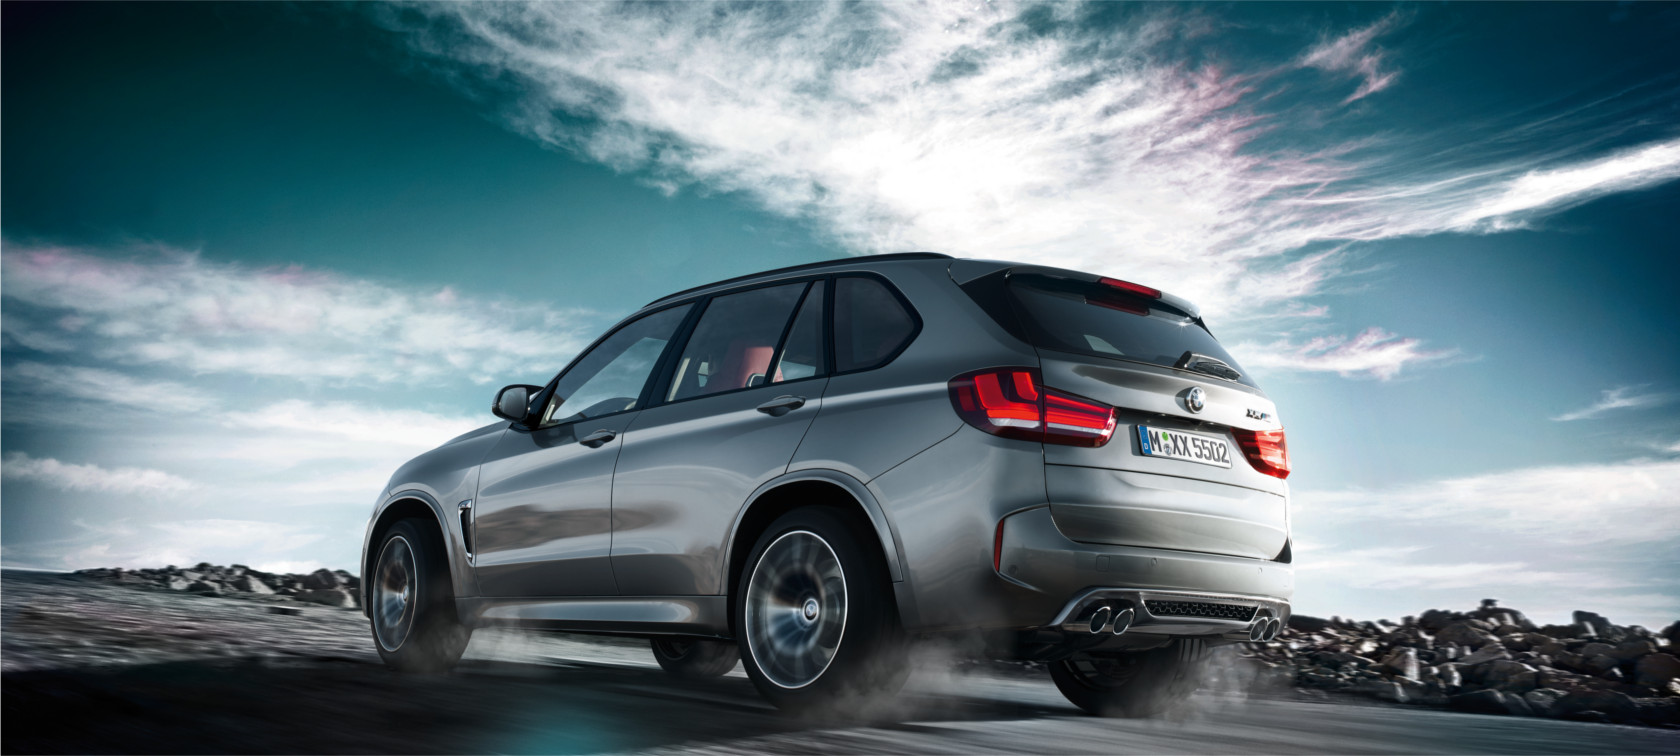 BMW M-Series X5 M metallic: rear view motion